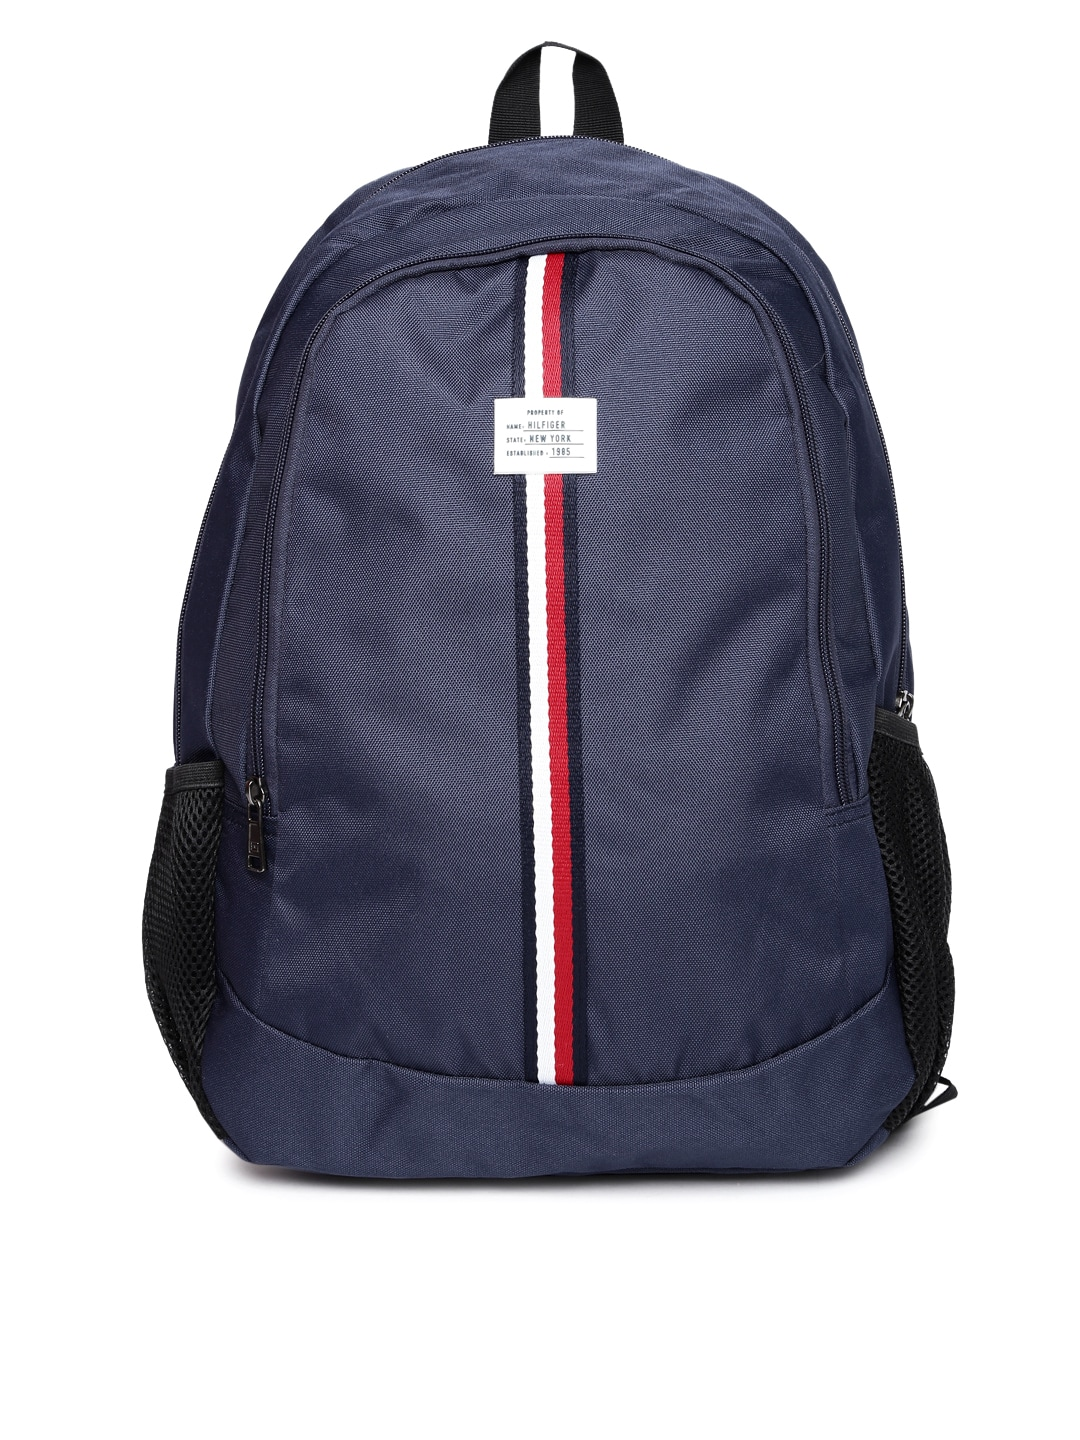 7e11fee09 Laptop Bags Backpacks For Men Trolley Bags - Buy Laptop Bags Backpacks For  Men Trolley Bags online in India